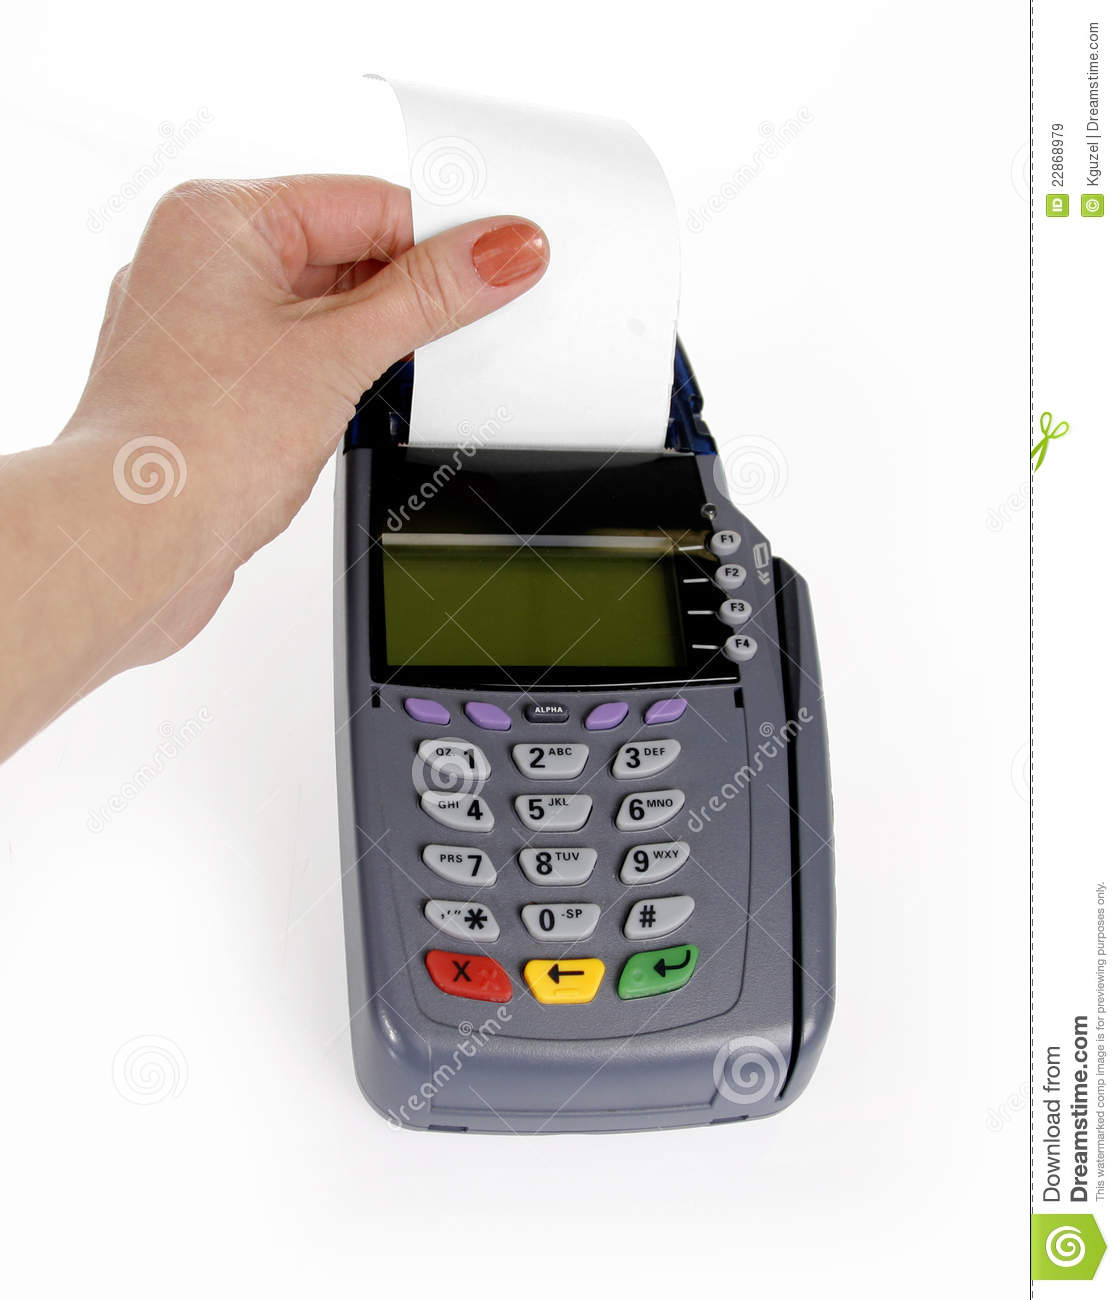 Essay on e-payment